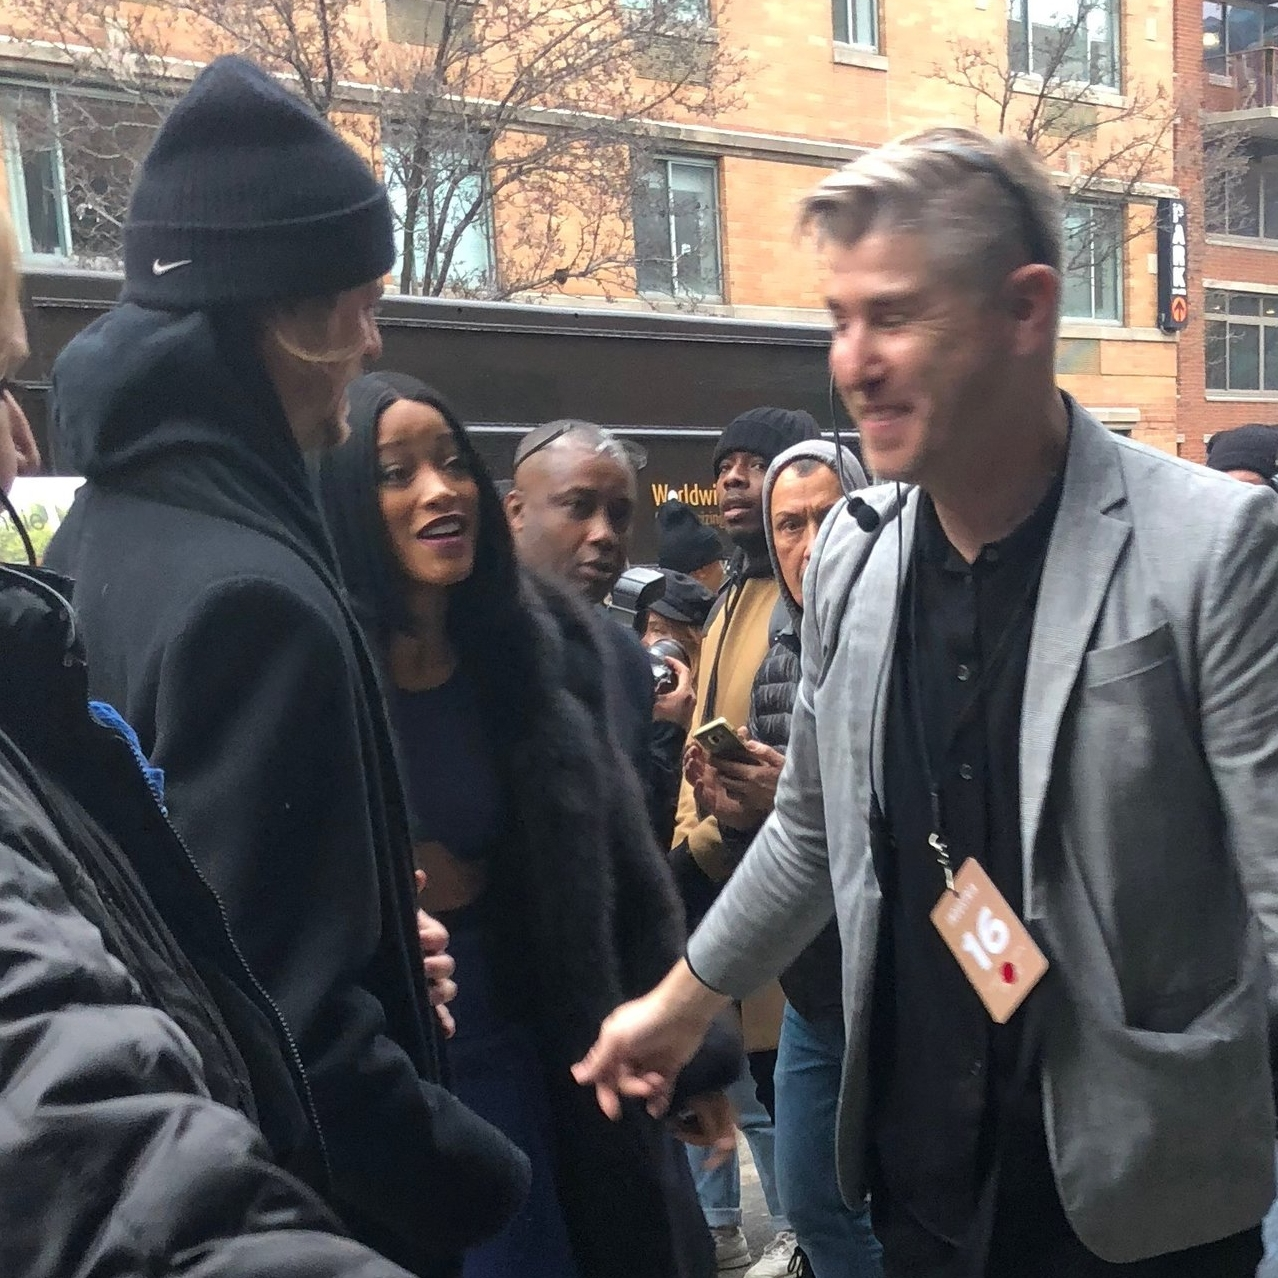 """Finally,Keke Palmer. I've loved her always and especially in Scream Queens. I'm not one to take photos of celbriteis, but I did really want to shout """"Shaday Zaday!"""" If you know, you know. I also saw Kendall Jenner and Whoopi Goldberg for those interested."""